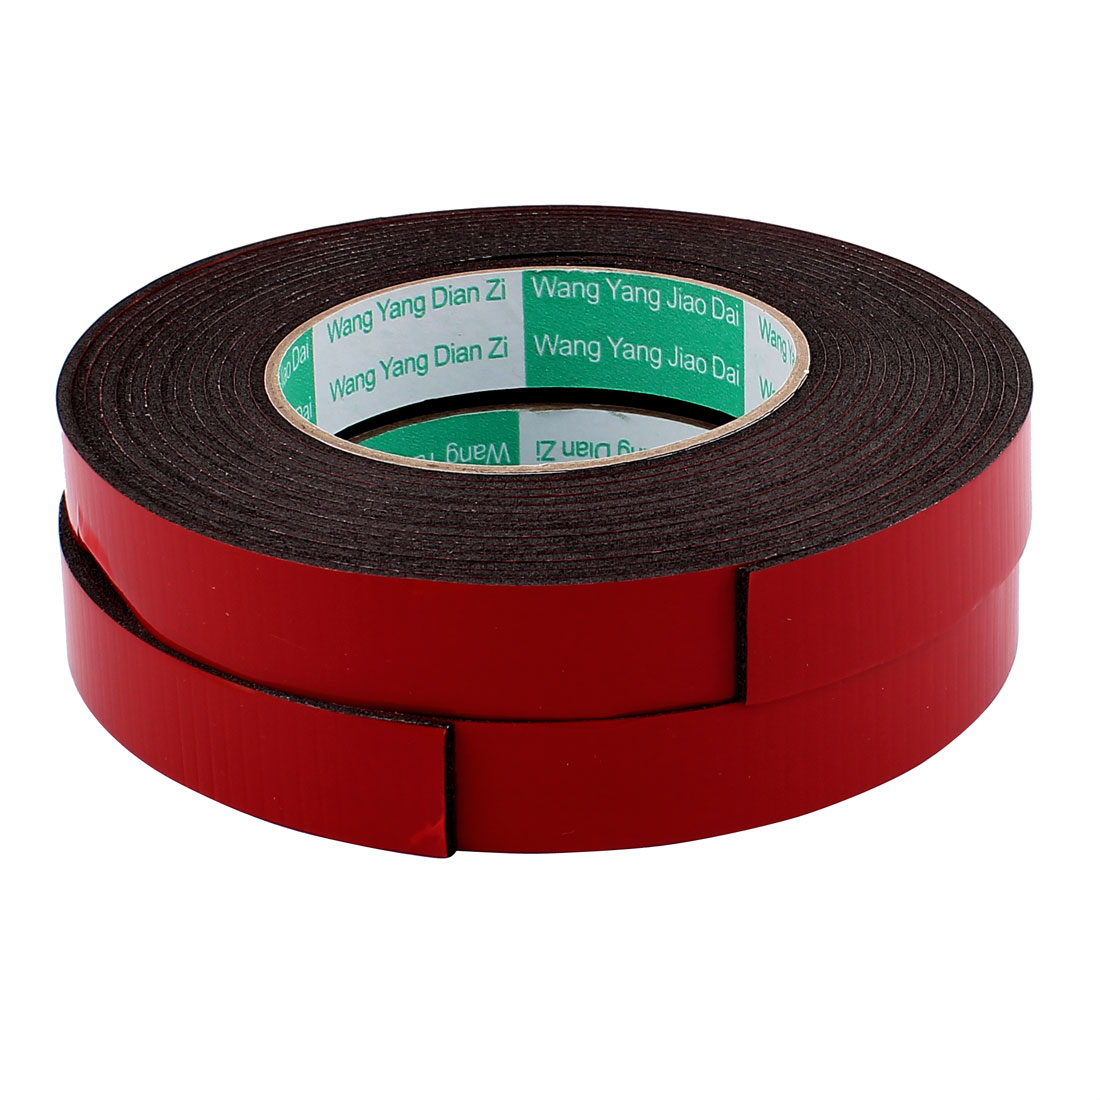 2 Pcs 20mmx2mm Double Sided Sponge Tape Adhesive Sticker Foam Glue Strip Sealing 5 Meters